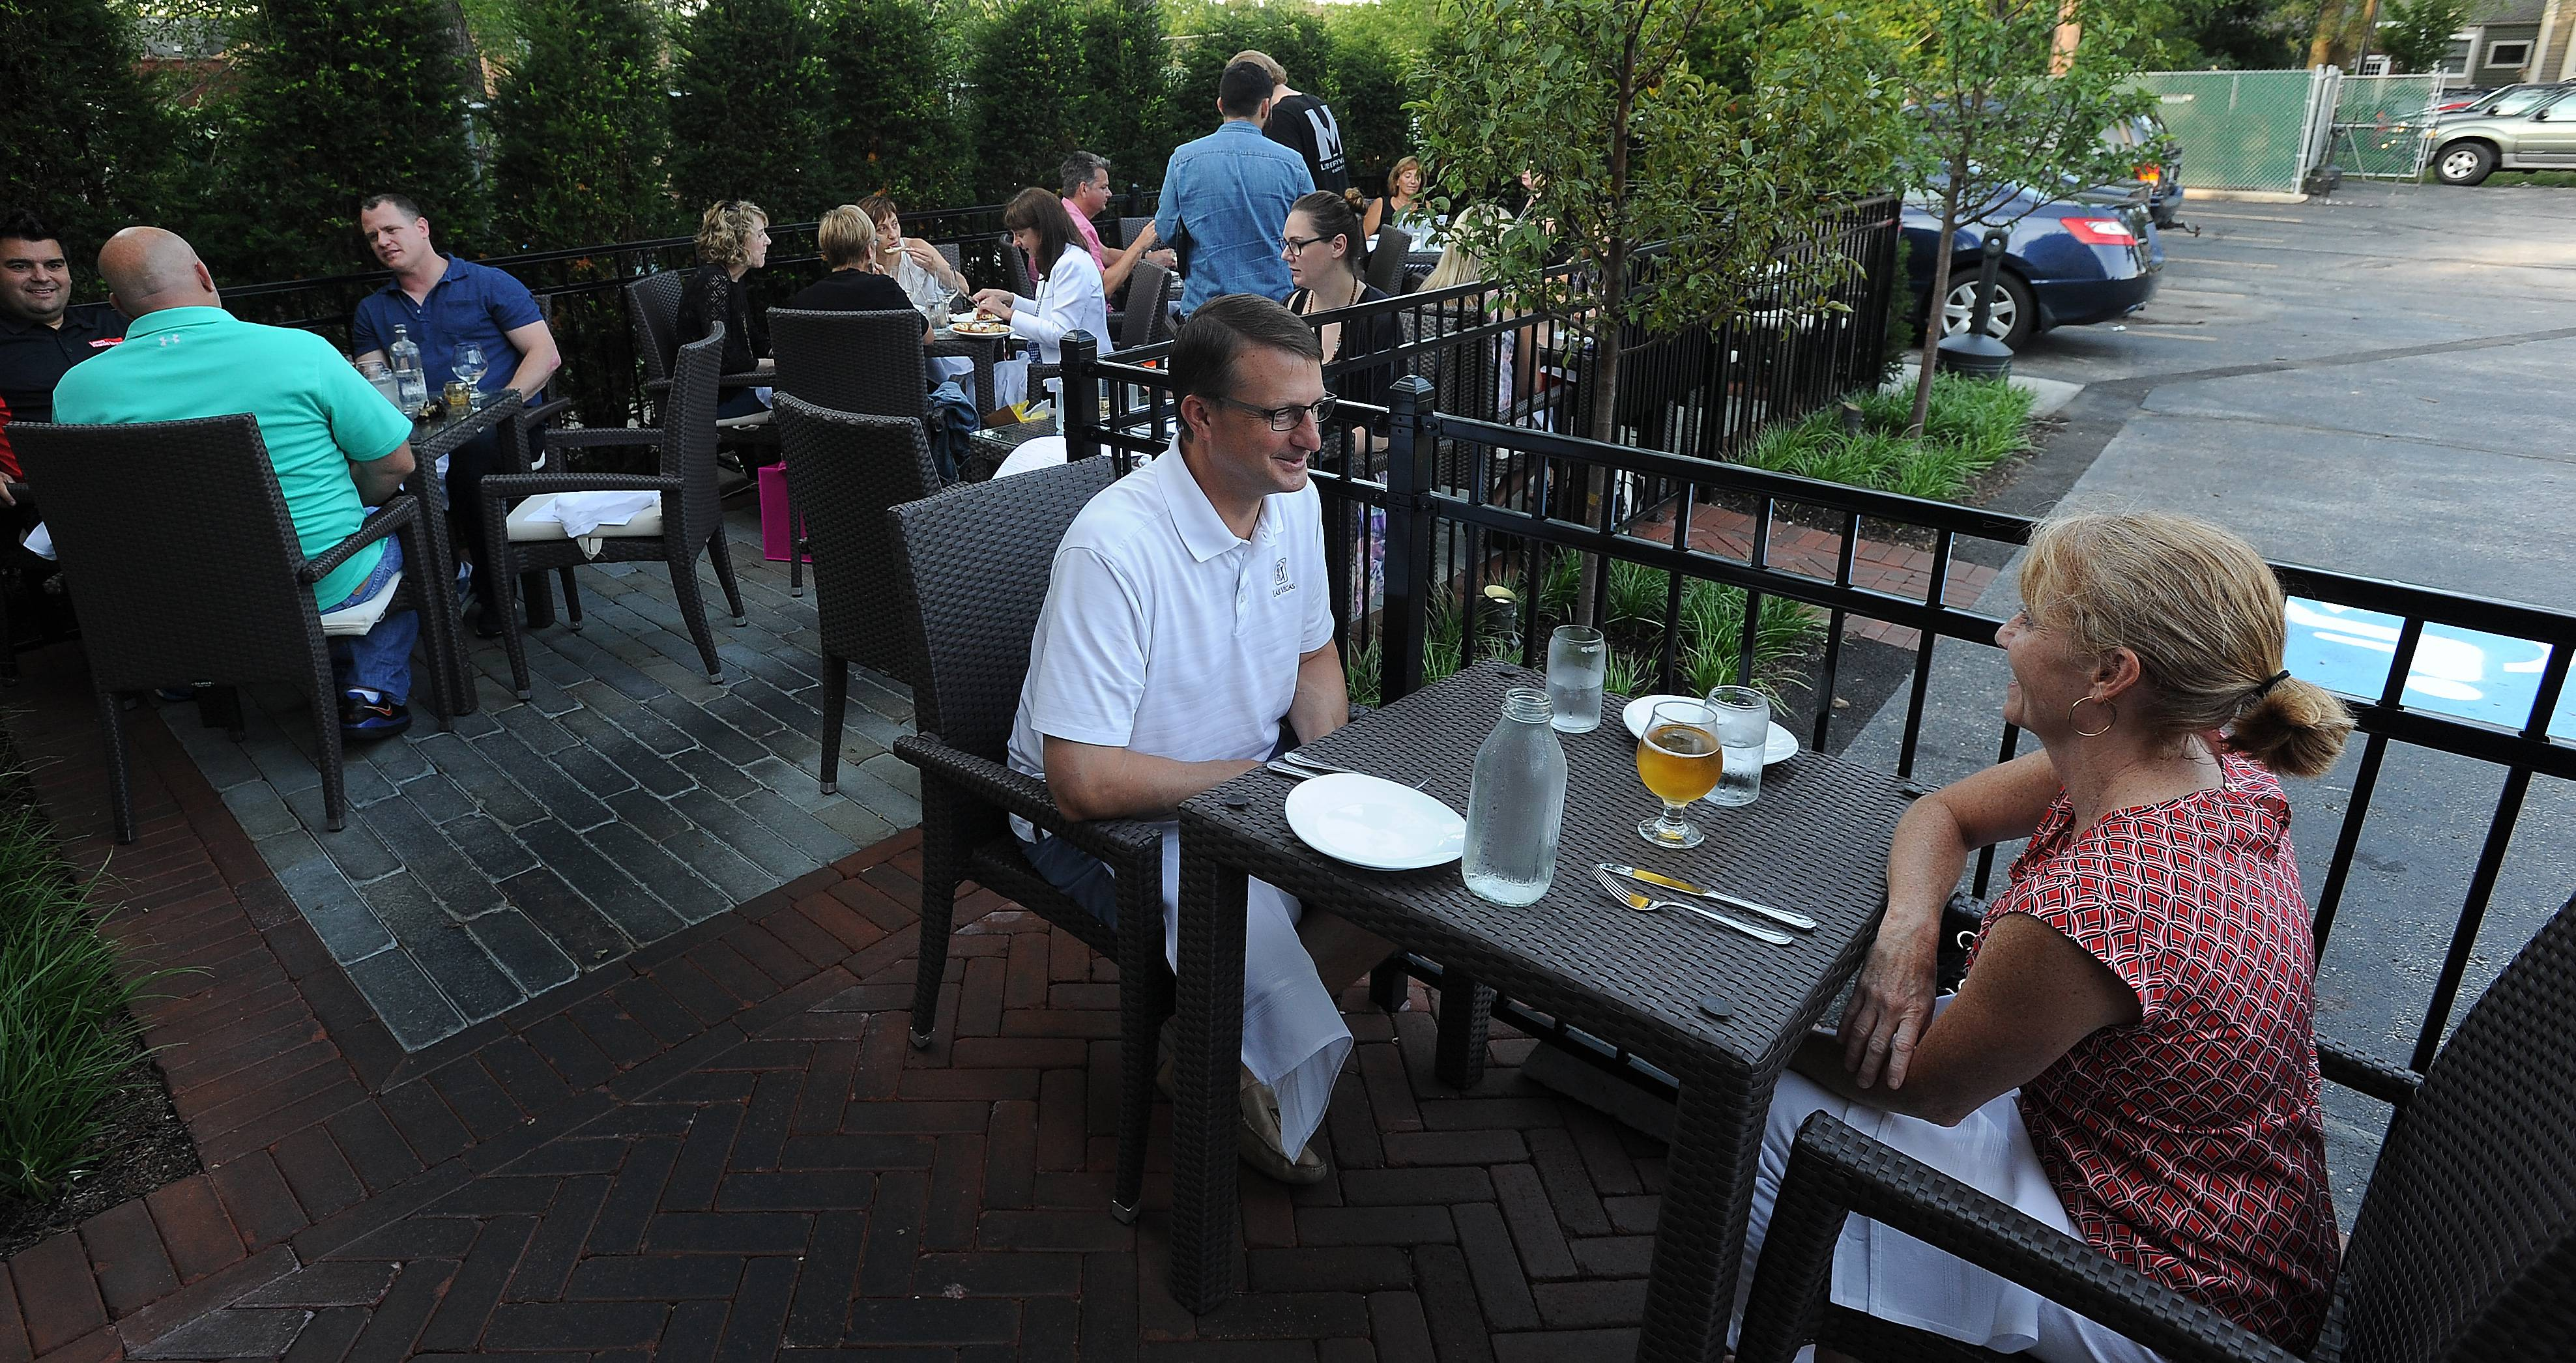 Main Street Social restaurant in Libertyville is one of the many establishments that offer outdoor seating. Tony and Cathie Saia of Libertyville enjoy the fresh air.